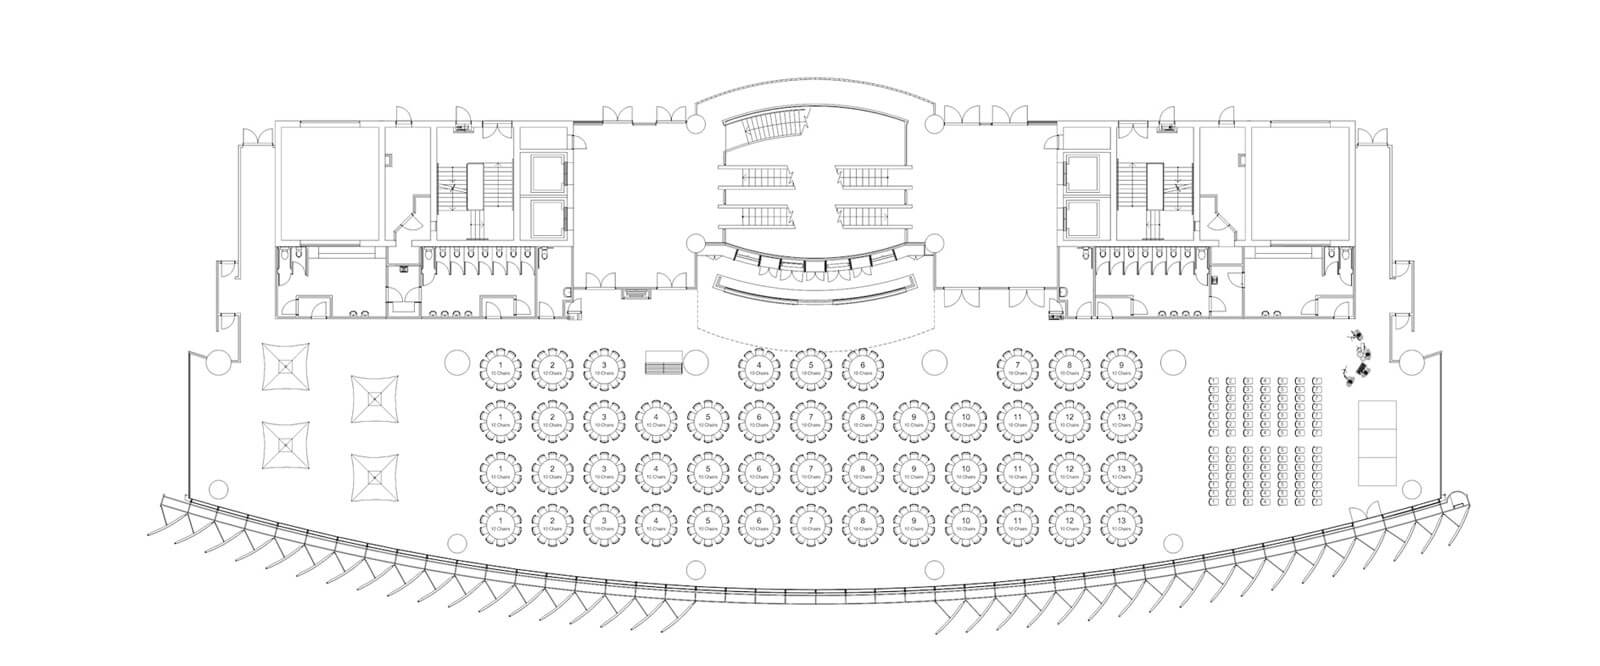 ANZ Stadium Event floor plan